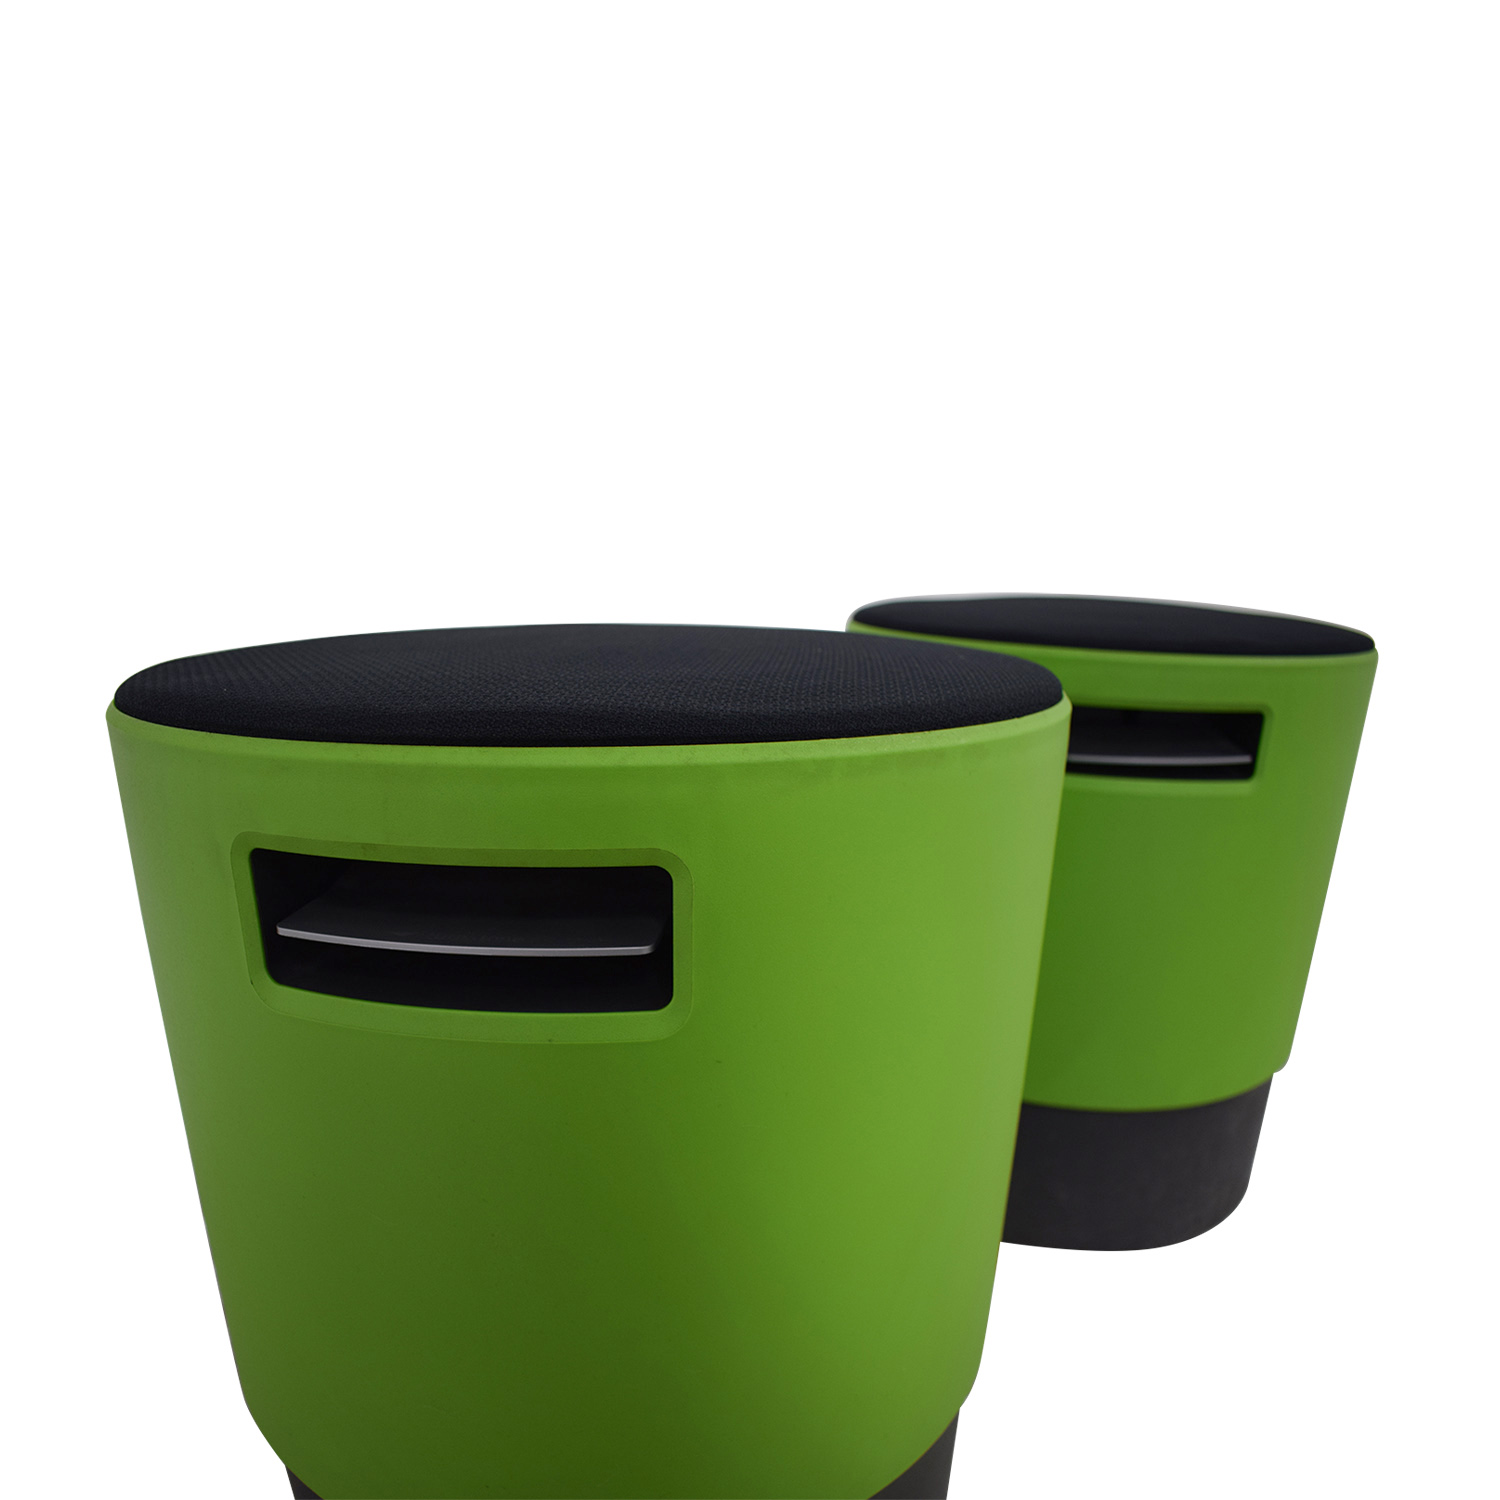 88 Off Steelcase Steelcase Turnstone Buoy Green And